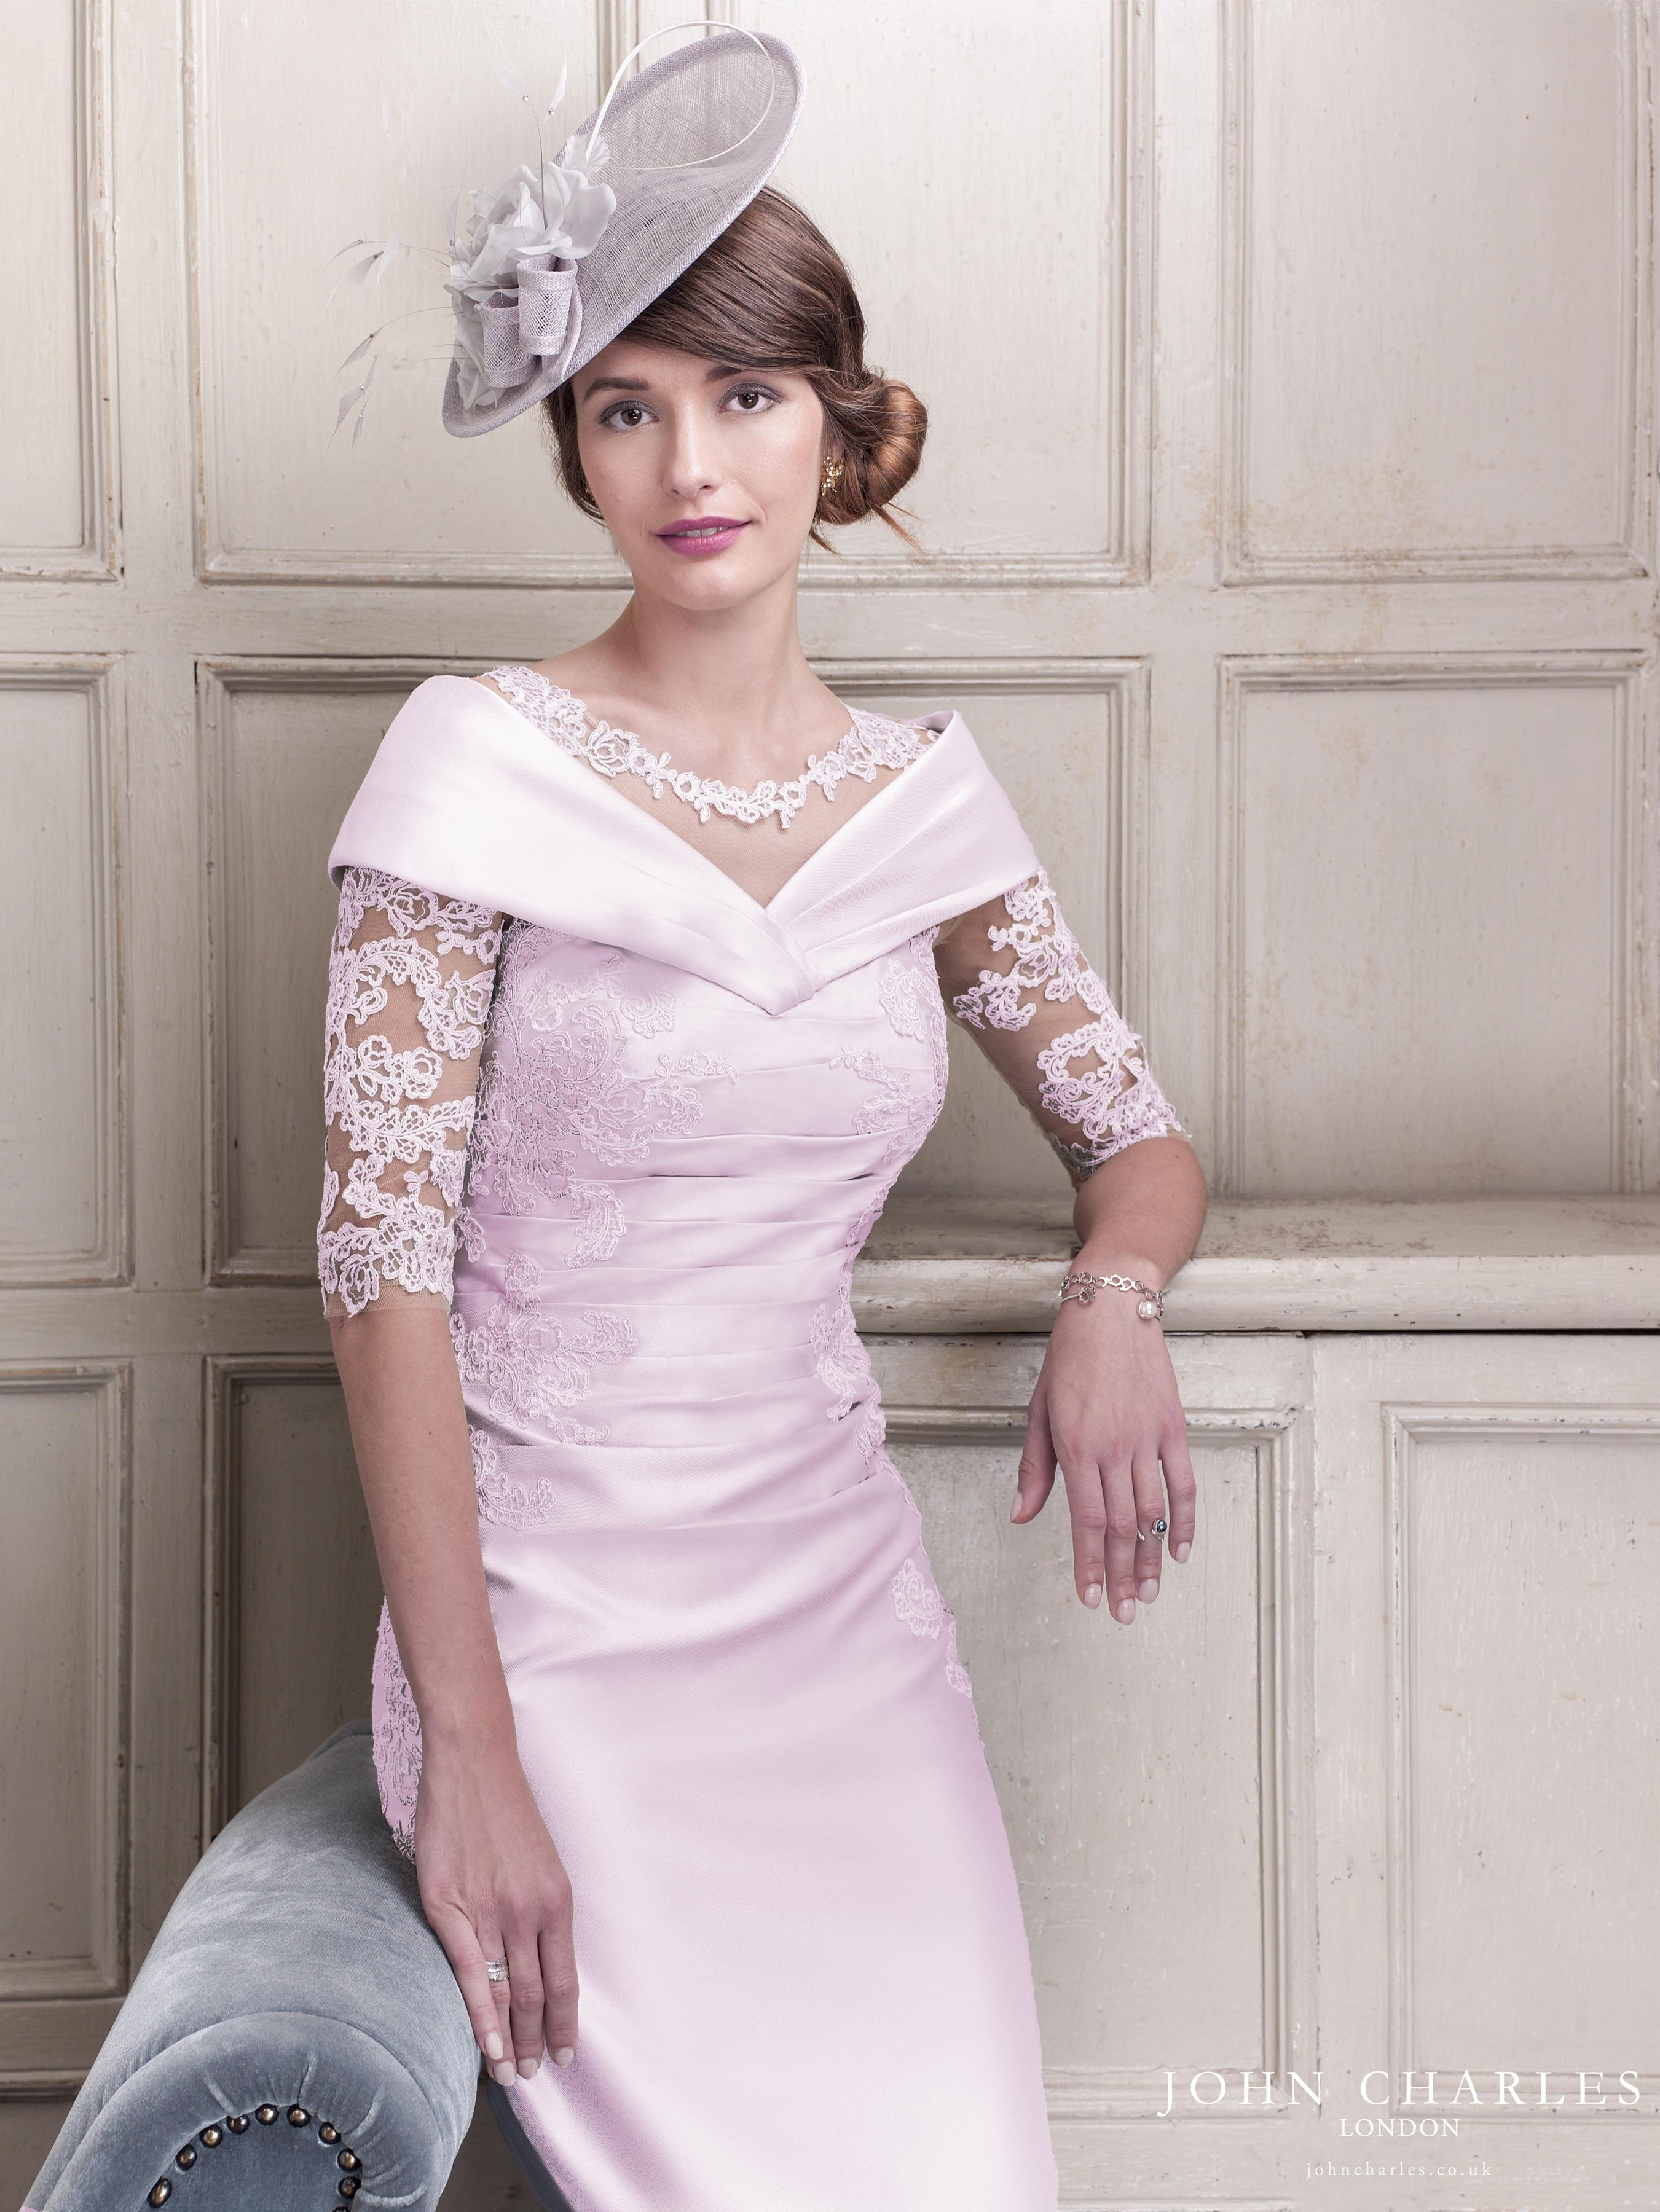 John Charles 26416 R Fitted Dress With Lace Sleeves In 2020 Bride Clothes Mother Of The Bride Outfit Mother Of Bride Outfits